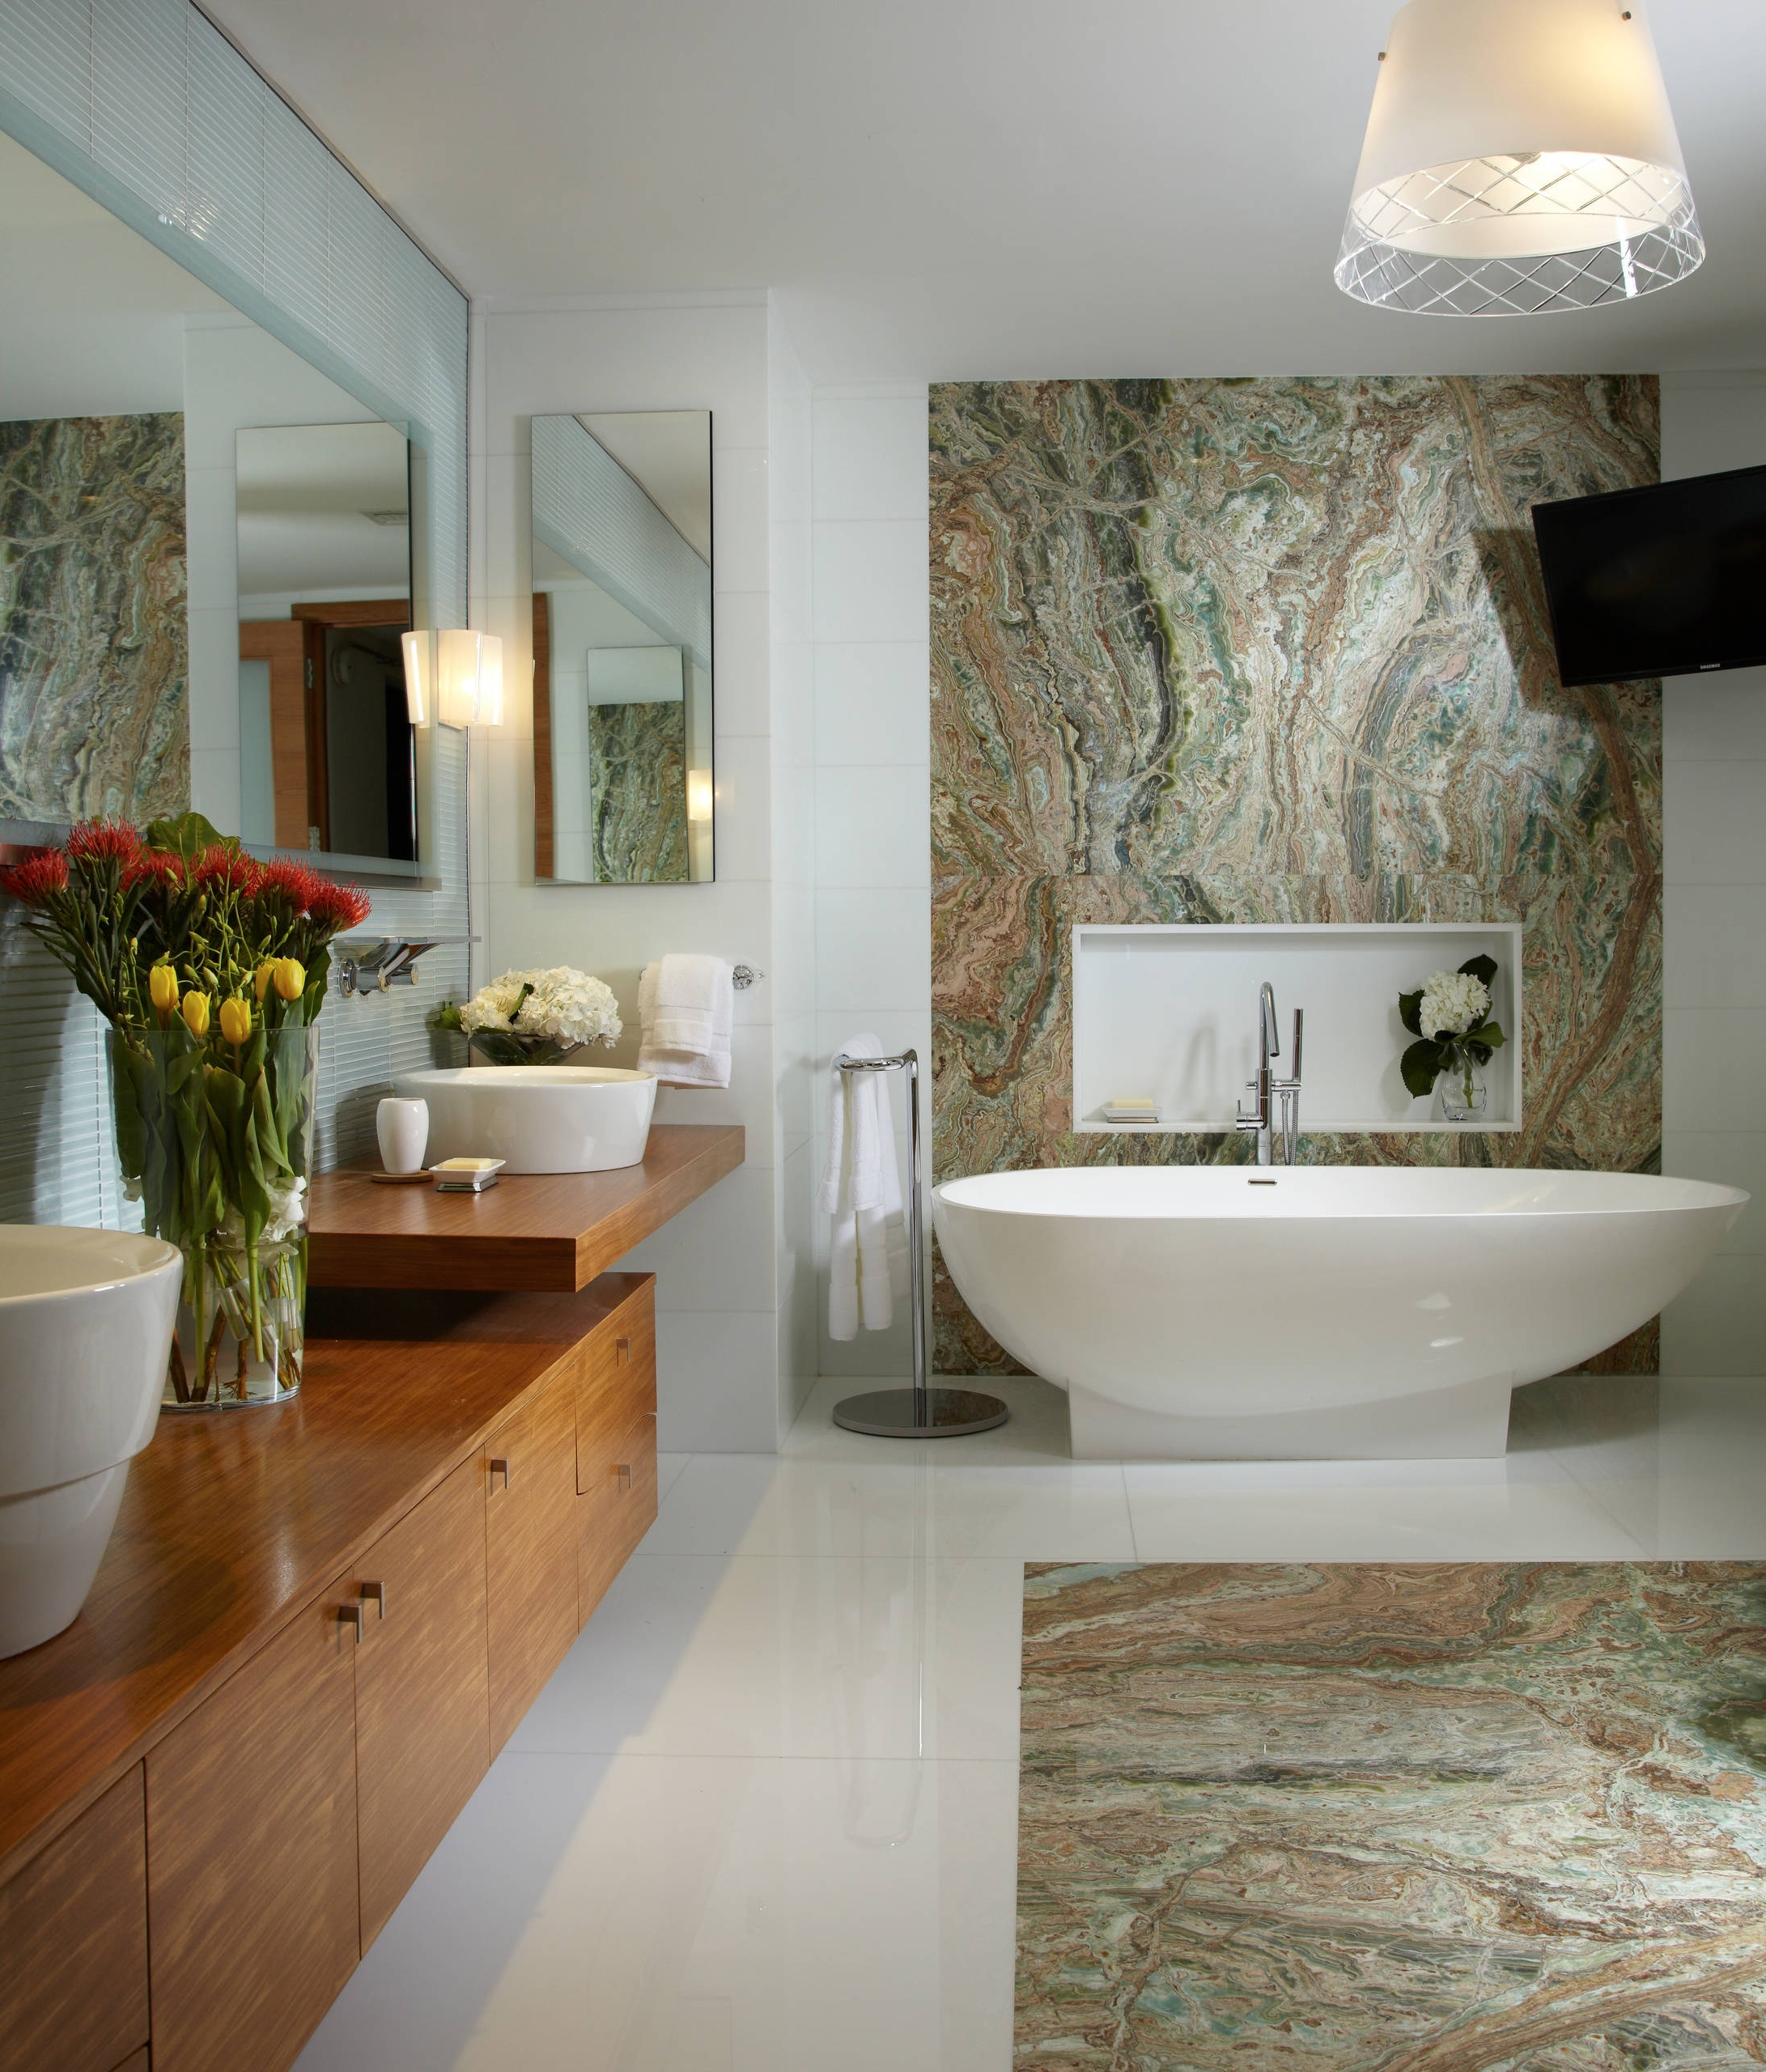 Interior Designing In Kerala Bathroom Ideas & Photos | Houzz Bathroom Tiles Designs Kerala